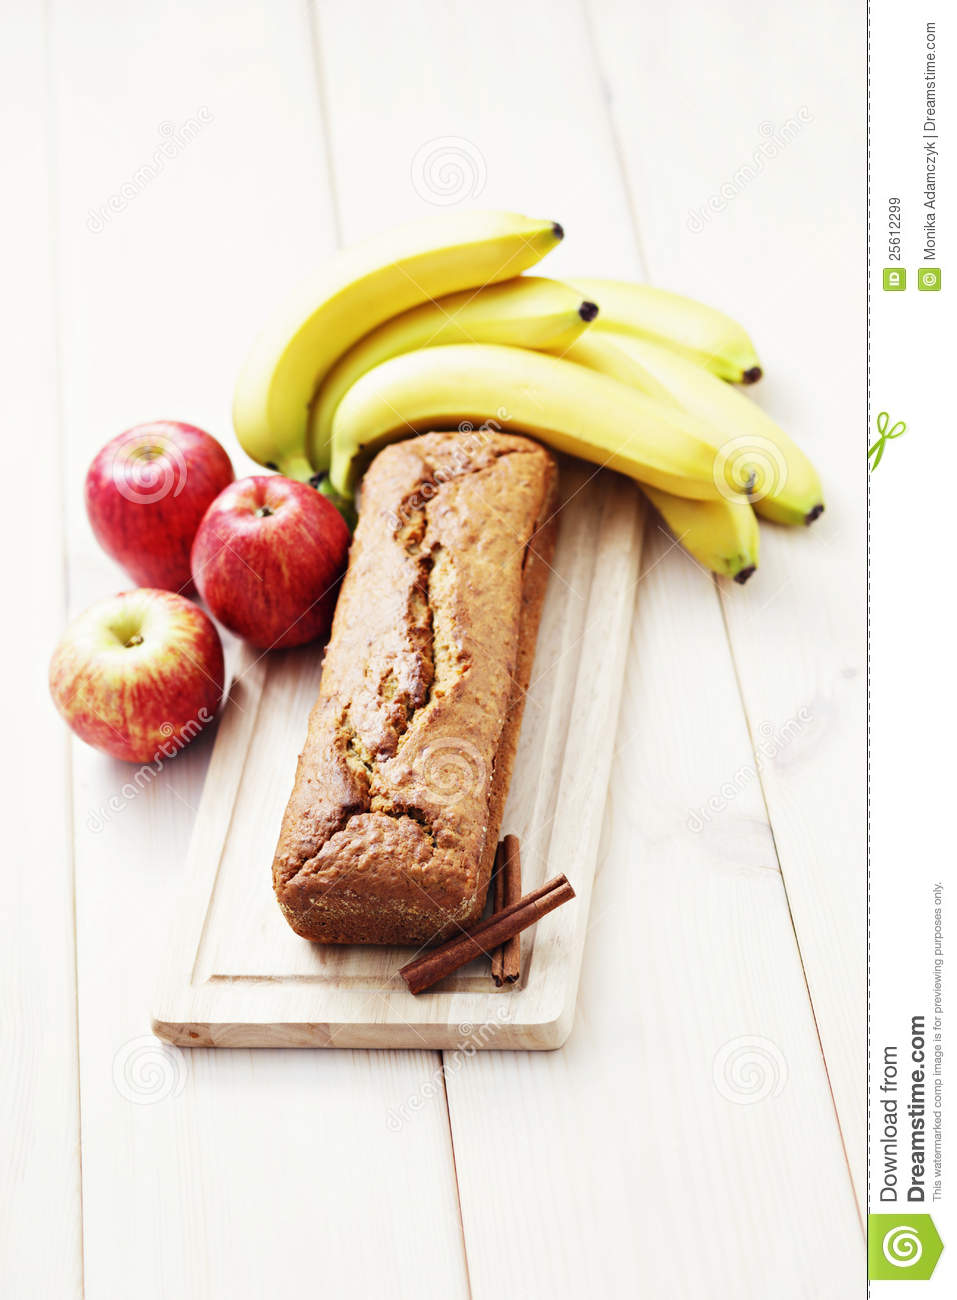 Apple And Banana Cake Royalty Free Stock Images - Image: 25612299